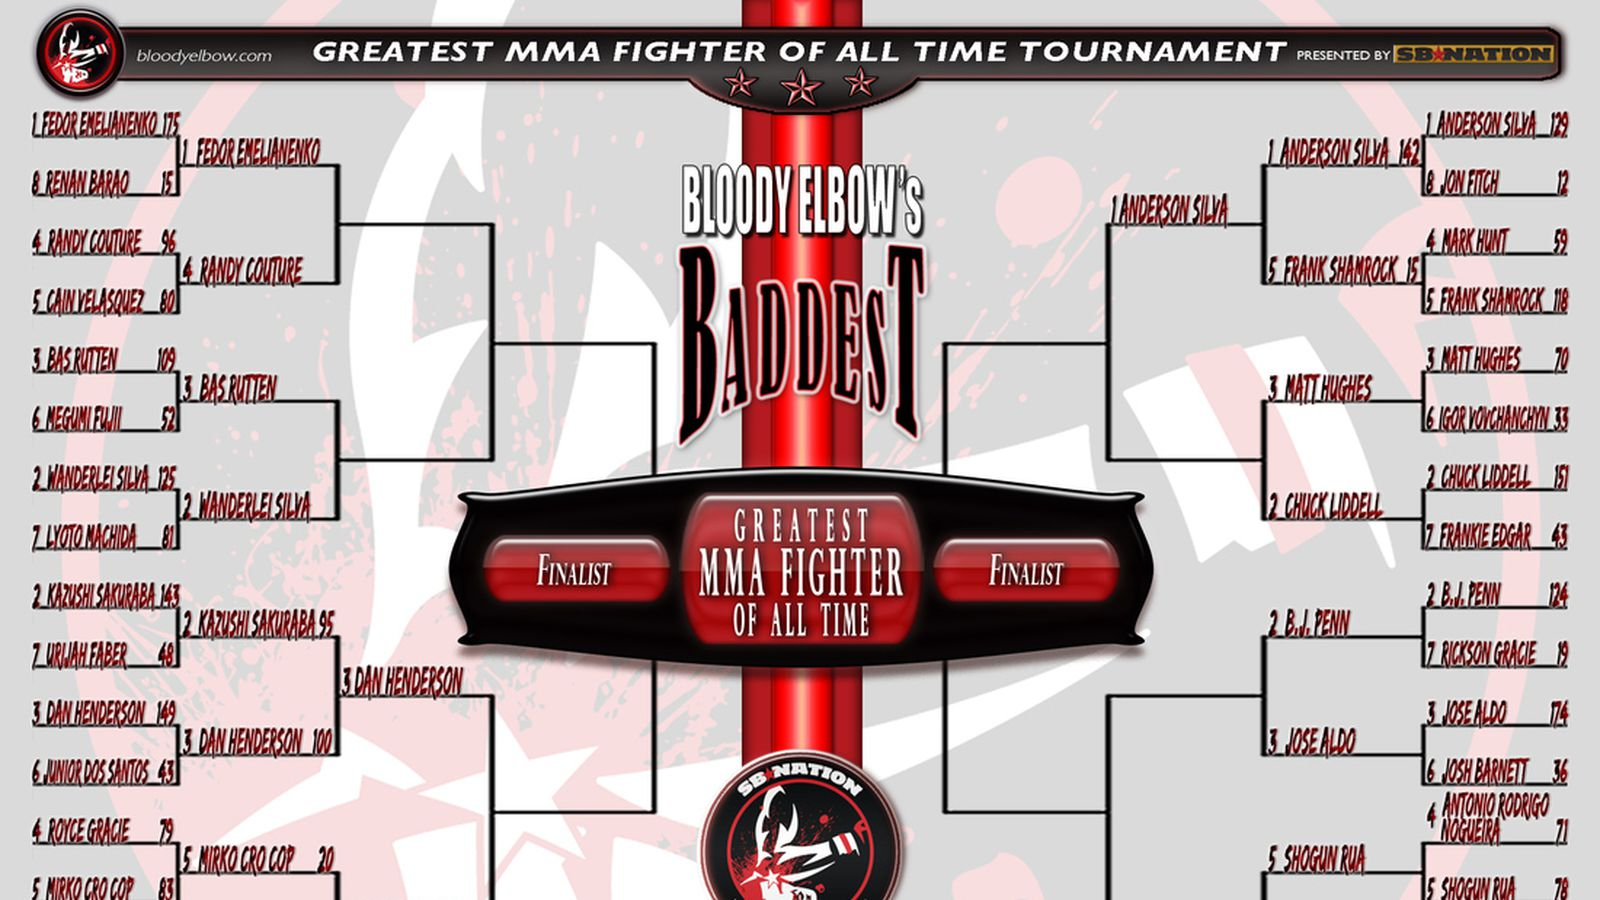 10 of the biggest overhyped mma fighters of all time - Be S Baddest Mma Greatest Of All Time Tournament 2 Chuck Liddell Vs 3 Matt Hughes Bloody Elbow